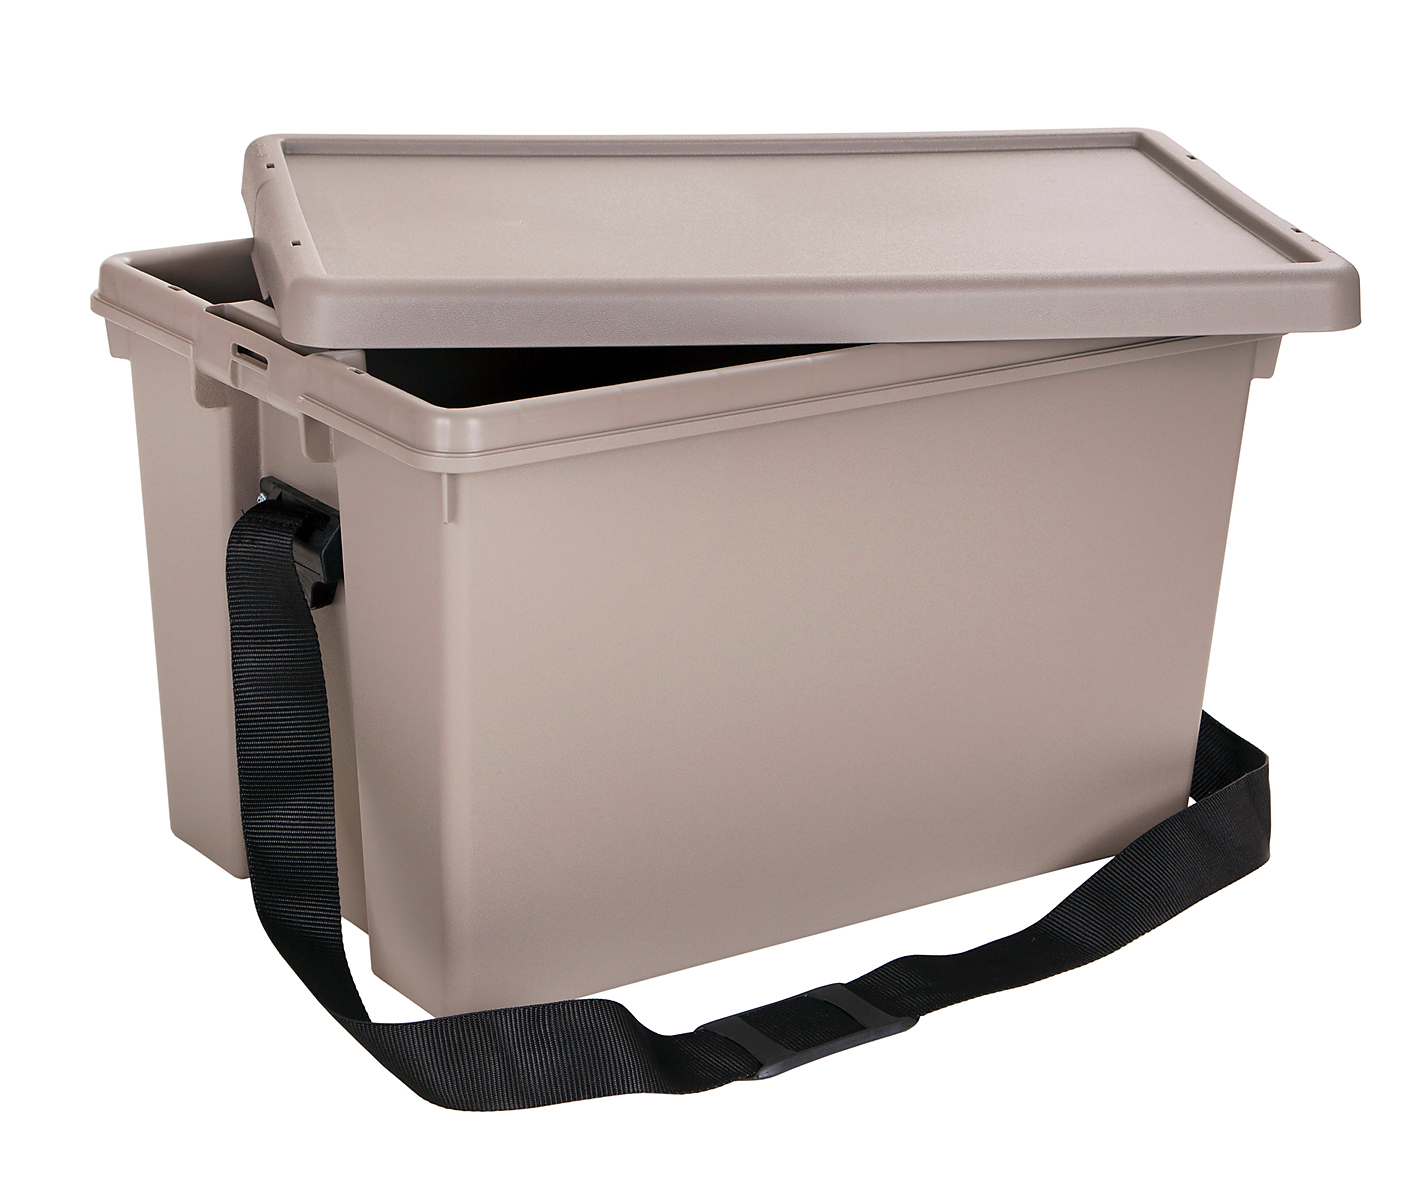 Another option, the same 62-litre box fitted with a comfortable carrying strap